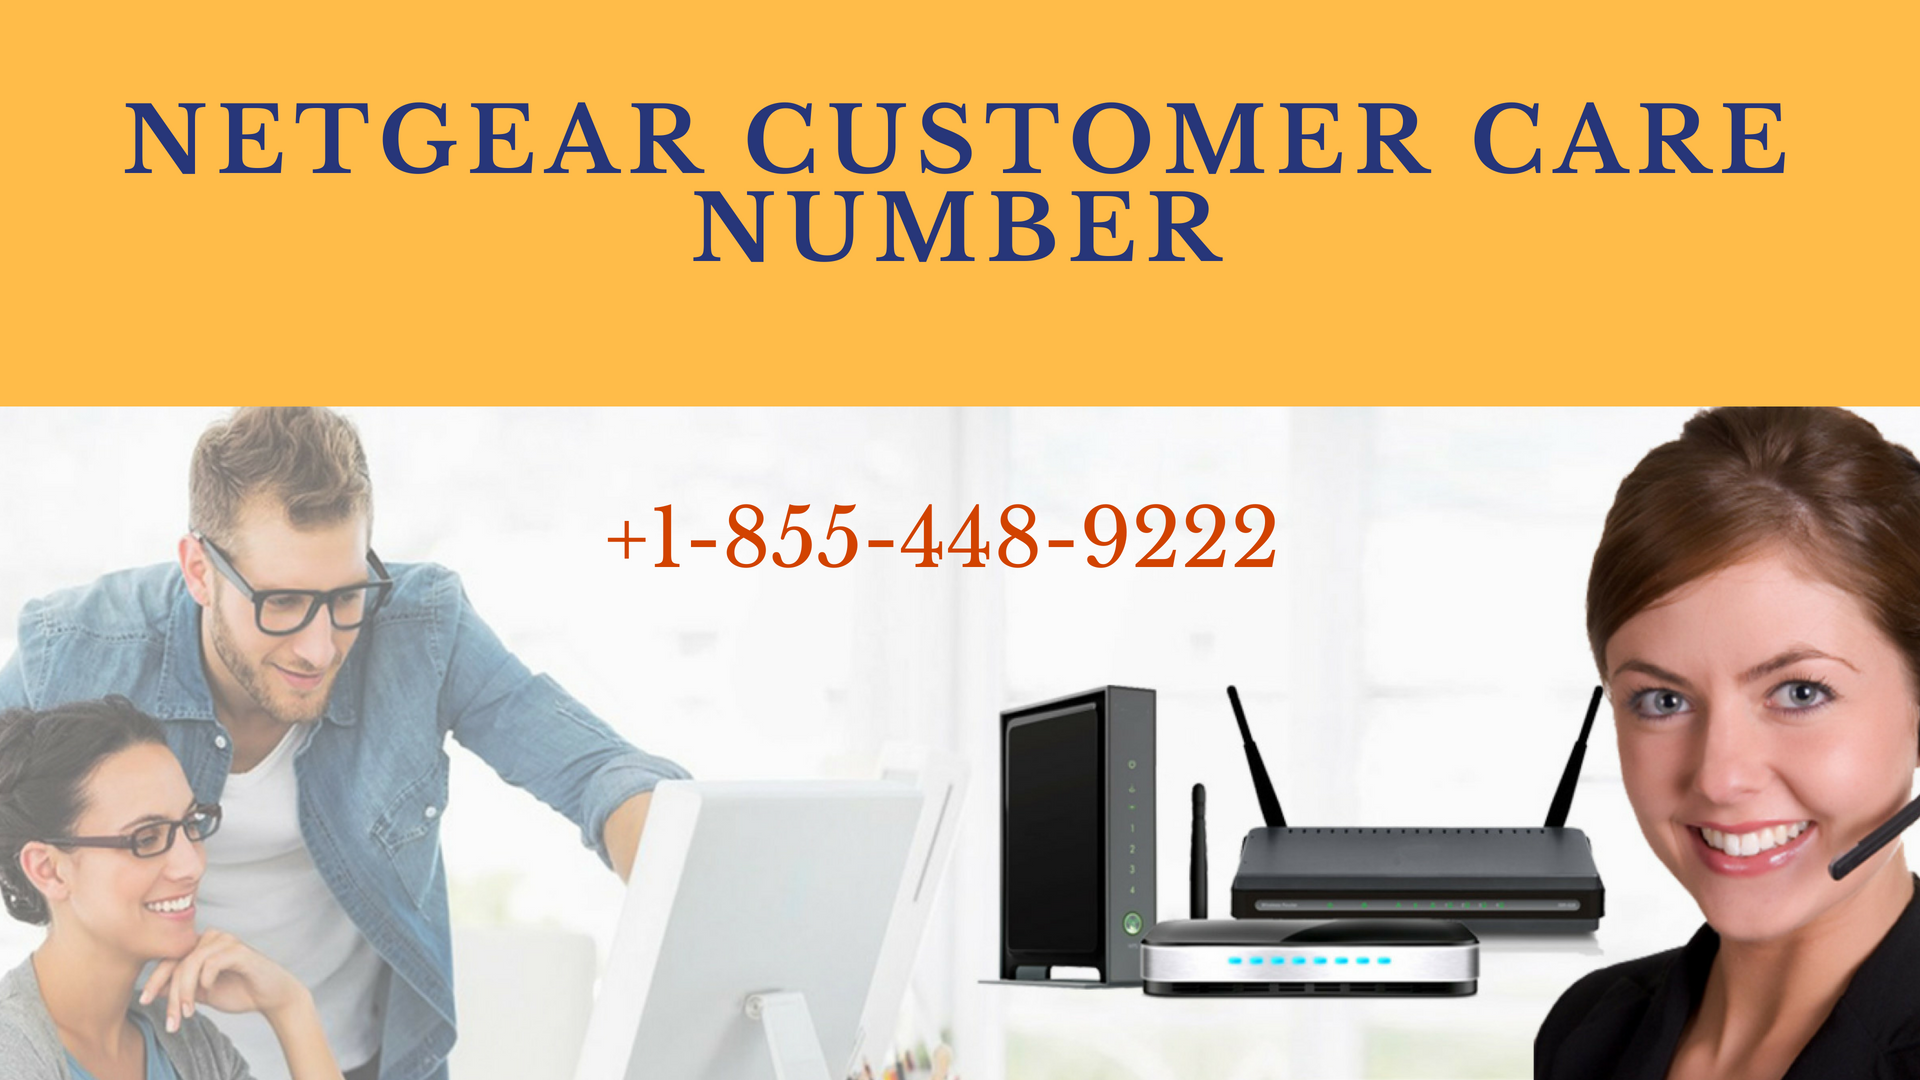 If you want to looking for #Netgear #RouterSetup #support. then #NetgearRouterSupport is the place where you can configure #NetgearWifiExtender. Call on our toll free number +1-855-448-9222 for Netgear router issues.  #NetgearTechSupport #NetgearTollFreeNumber #FixNetgearIssues #FixNetgearRouterIssues #NetgearRouterSetupSupport #NetgearRouter